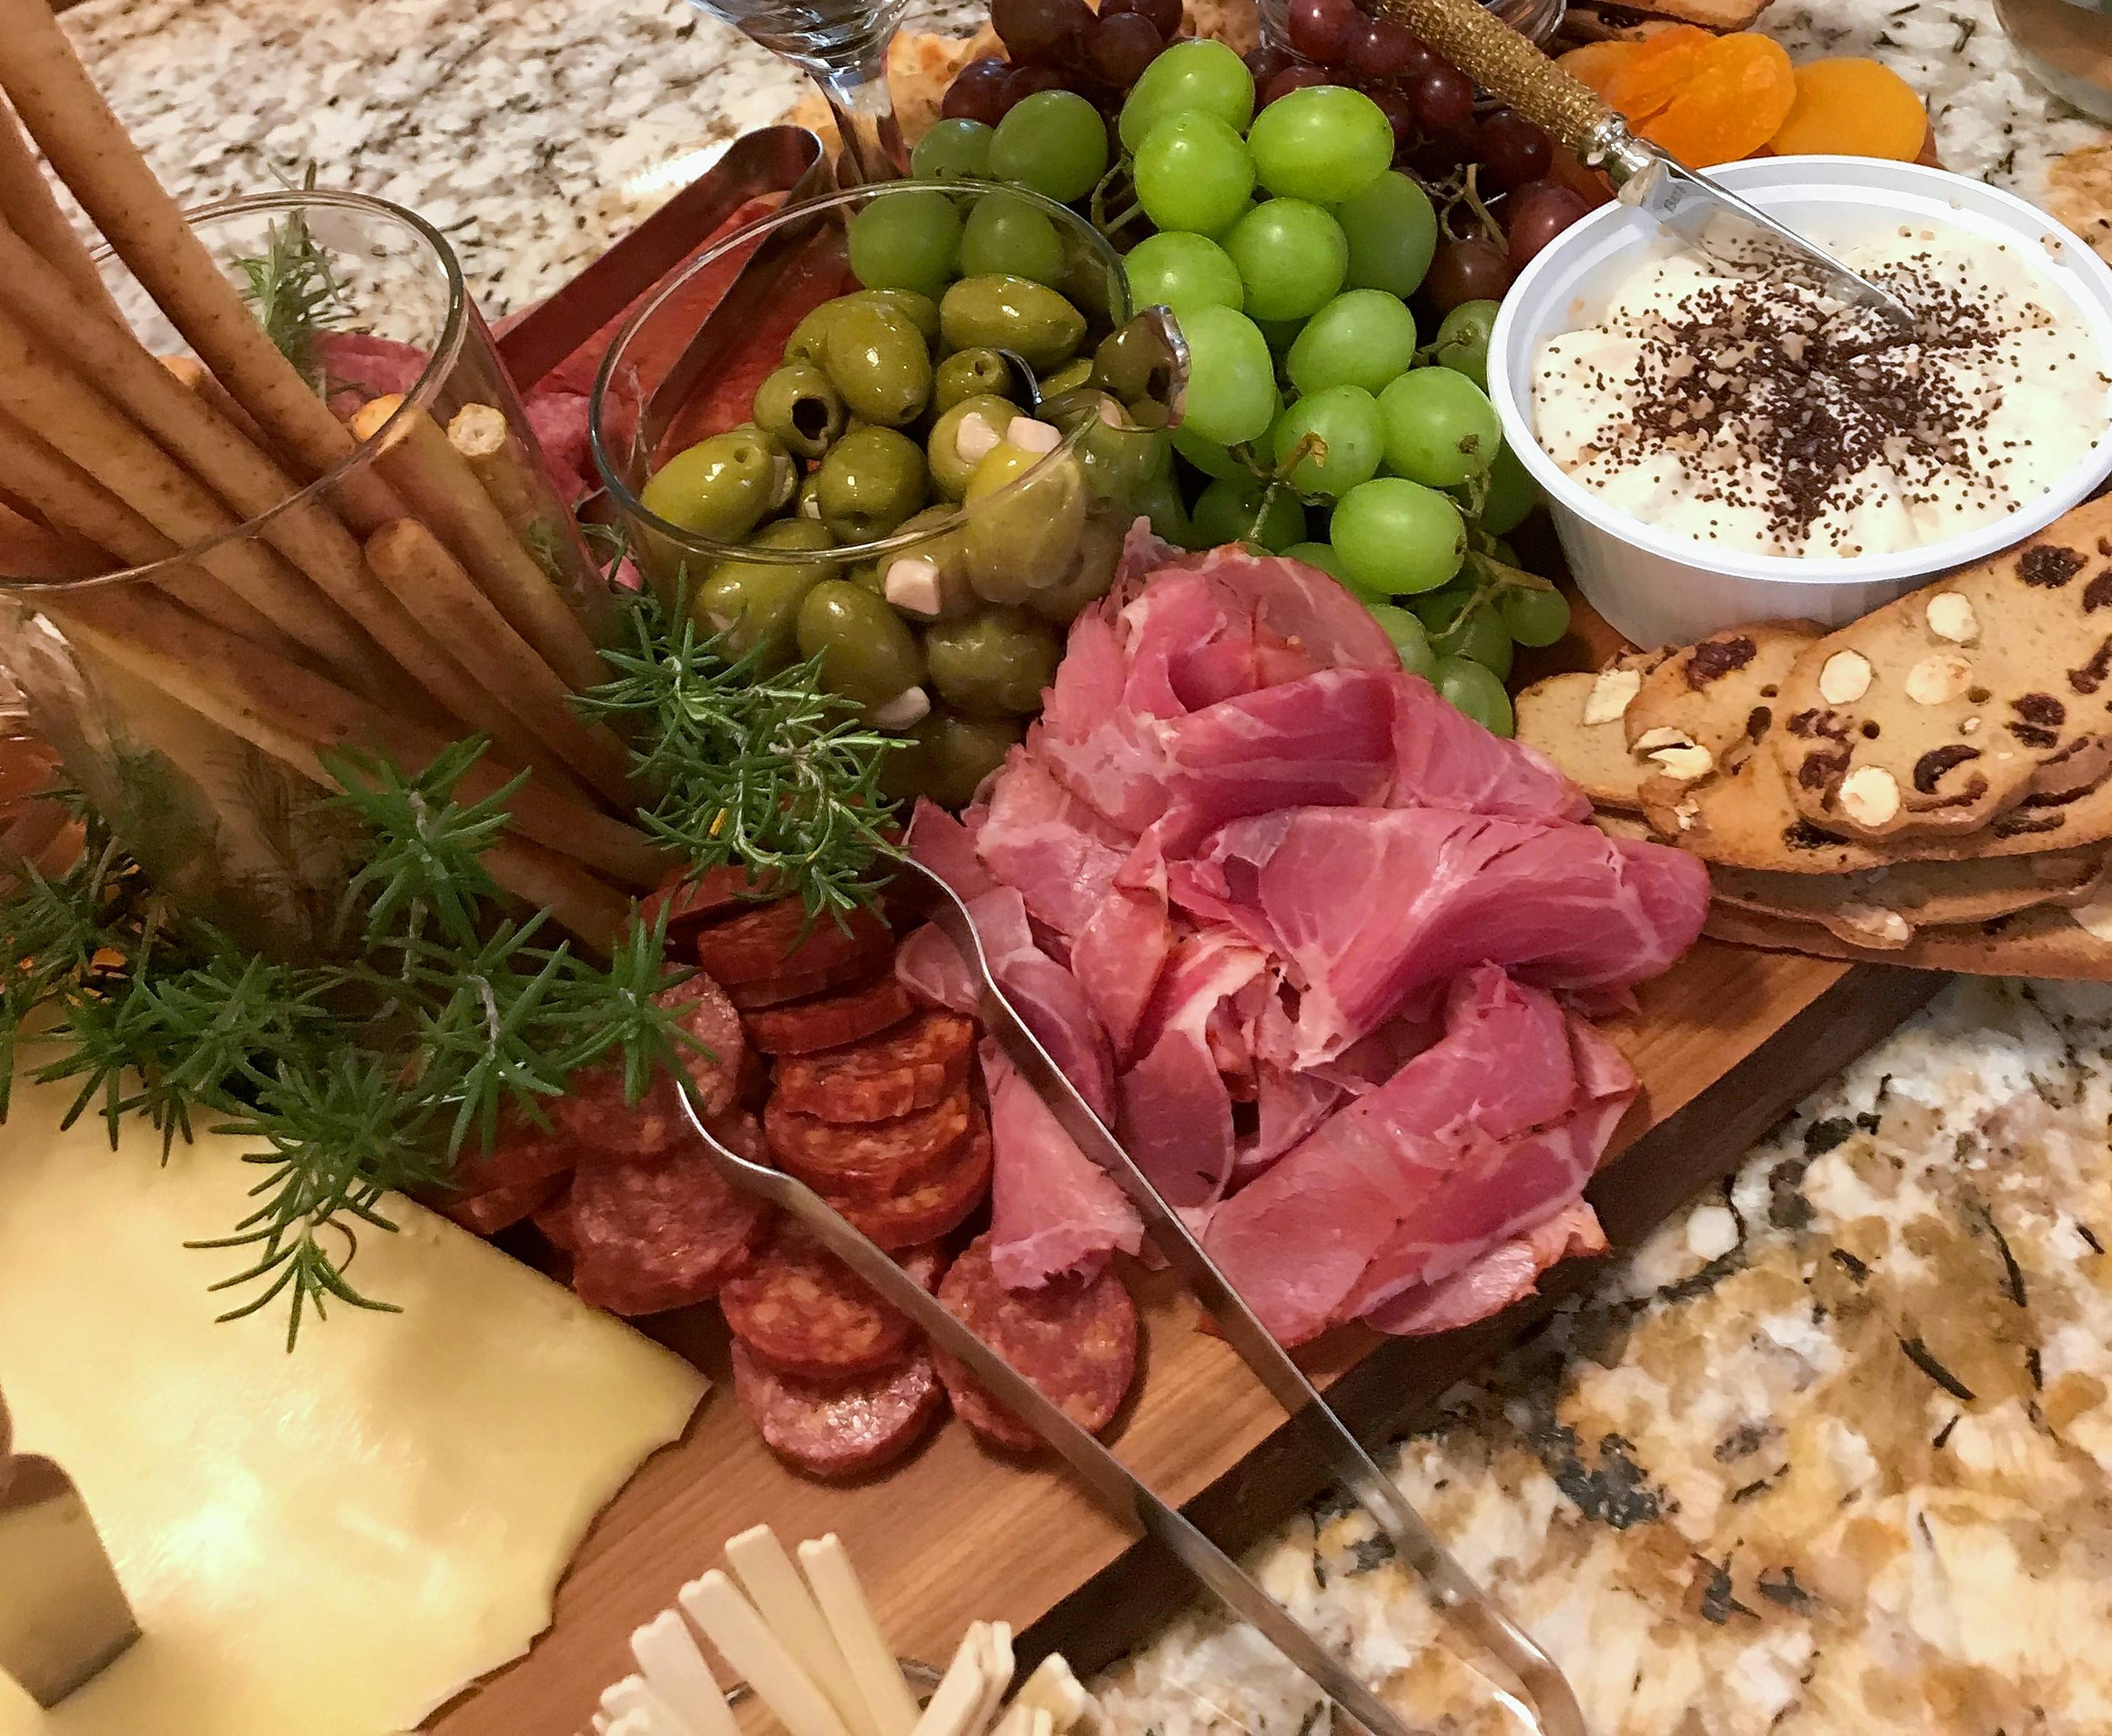 A delicatessen is a the perfect place to start when choosing items for your charcuterie board.